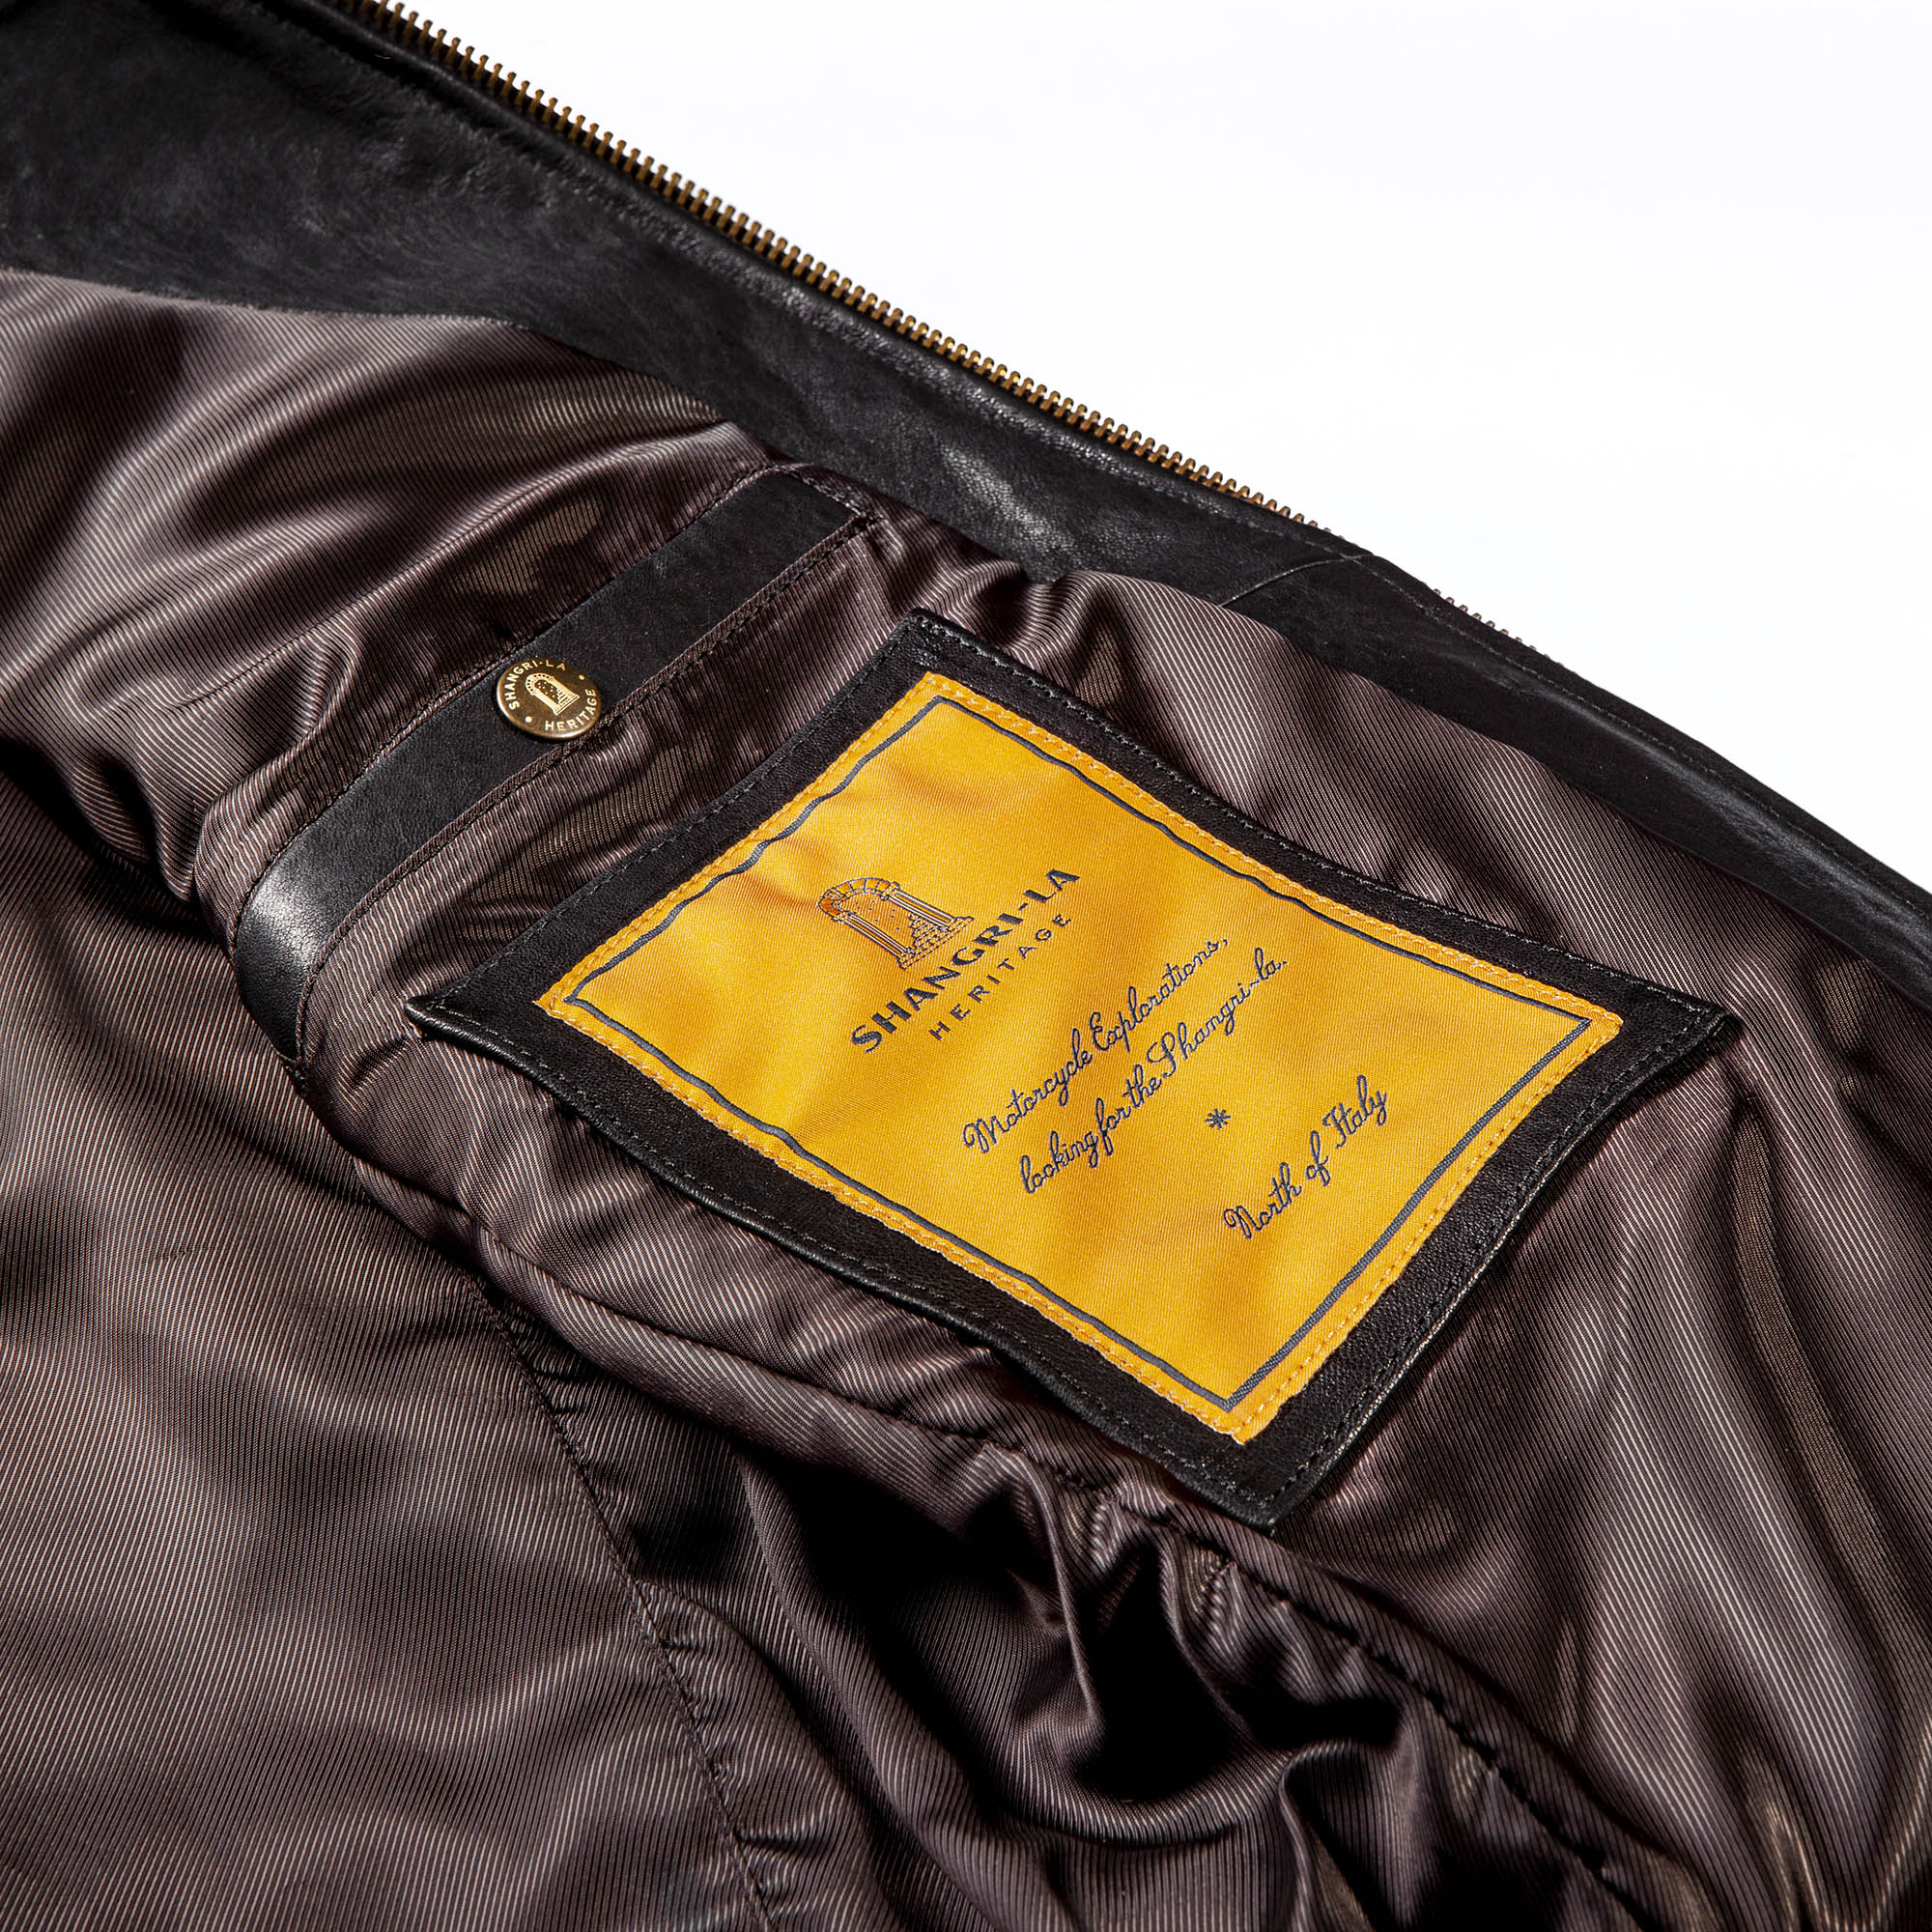 shangri-la-heritage-cafe-racer-black-lambskin-jacket-still-life-pocket-label